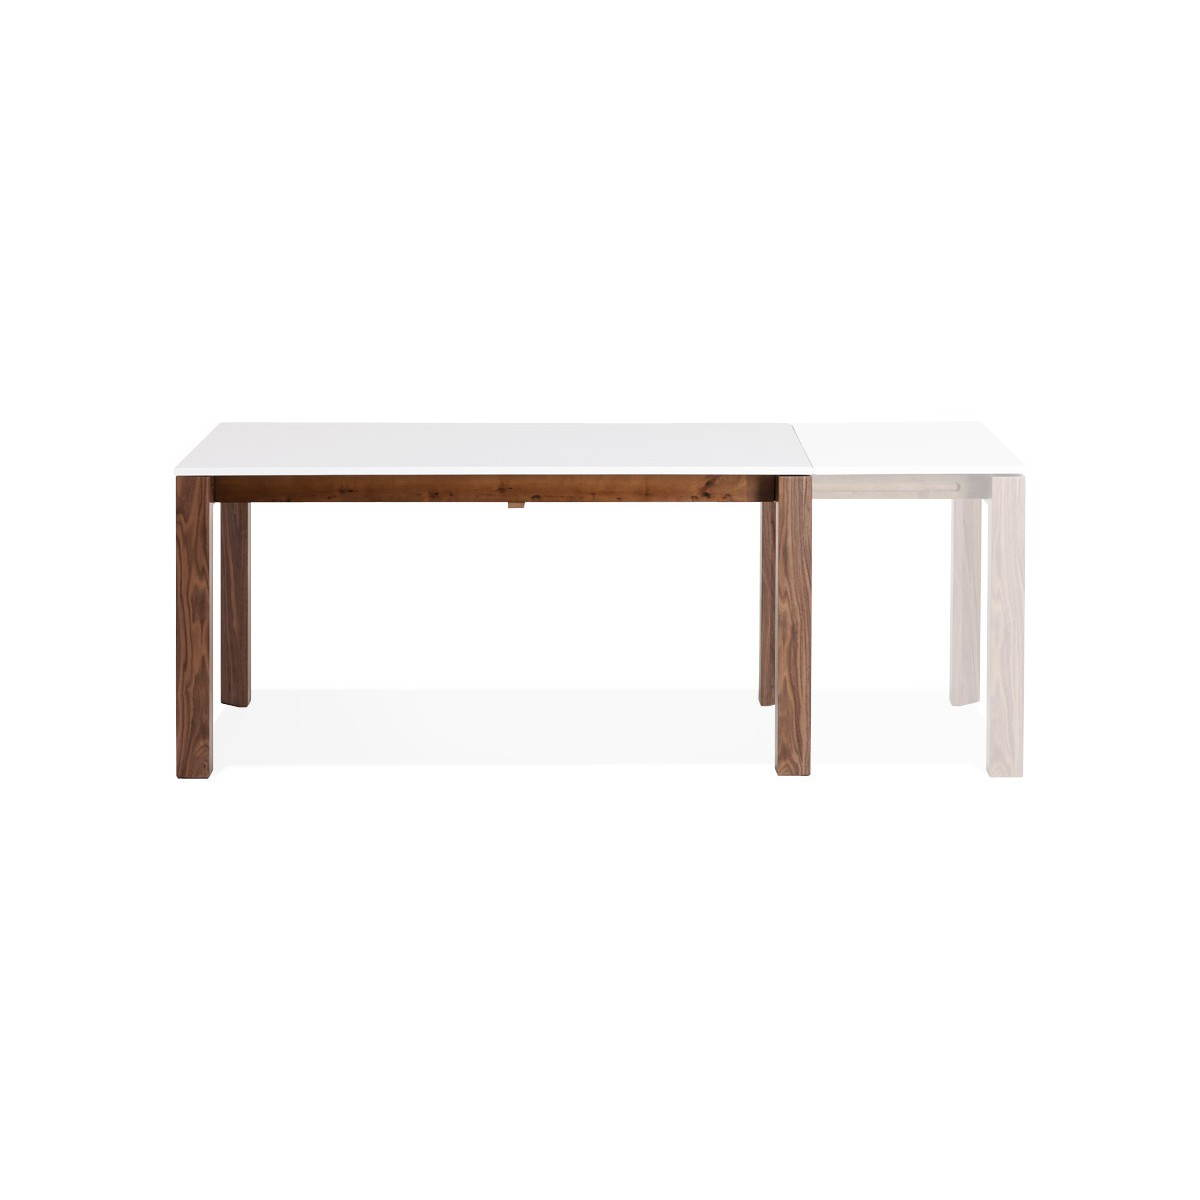 Table rectangulaire avec rallonge maison design for Table rectangulaire 140 avec rallonge